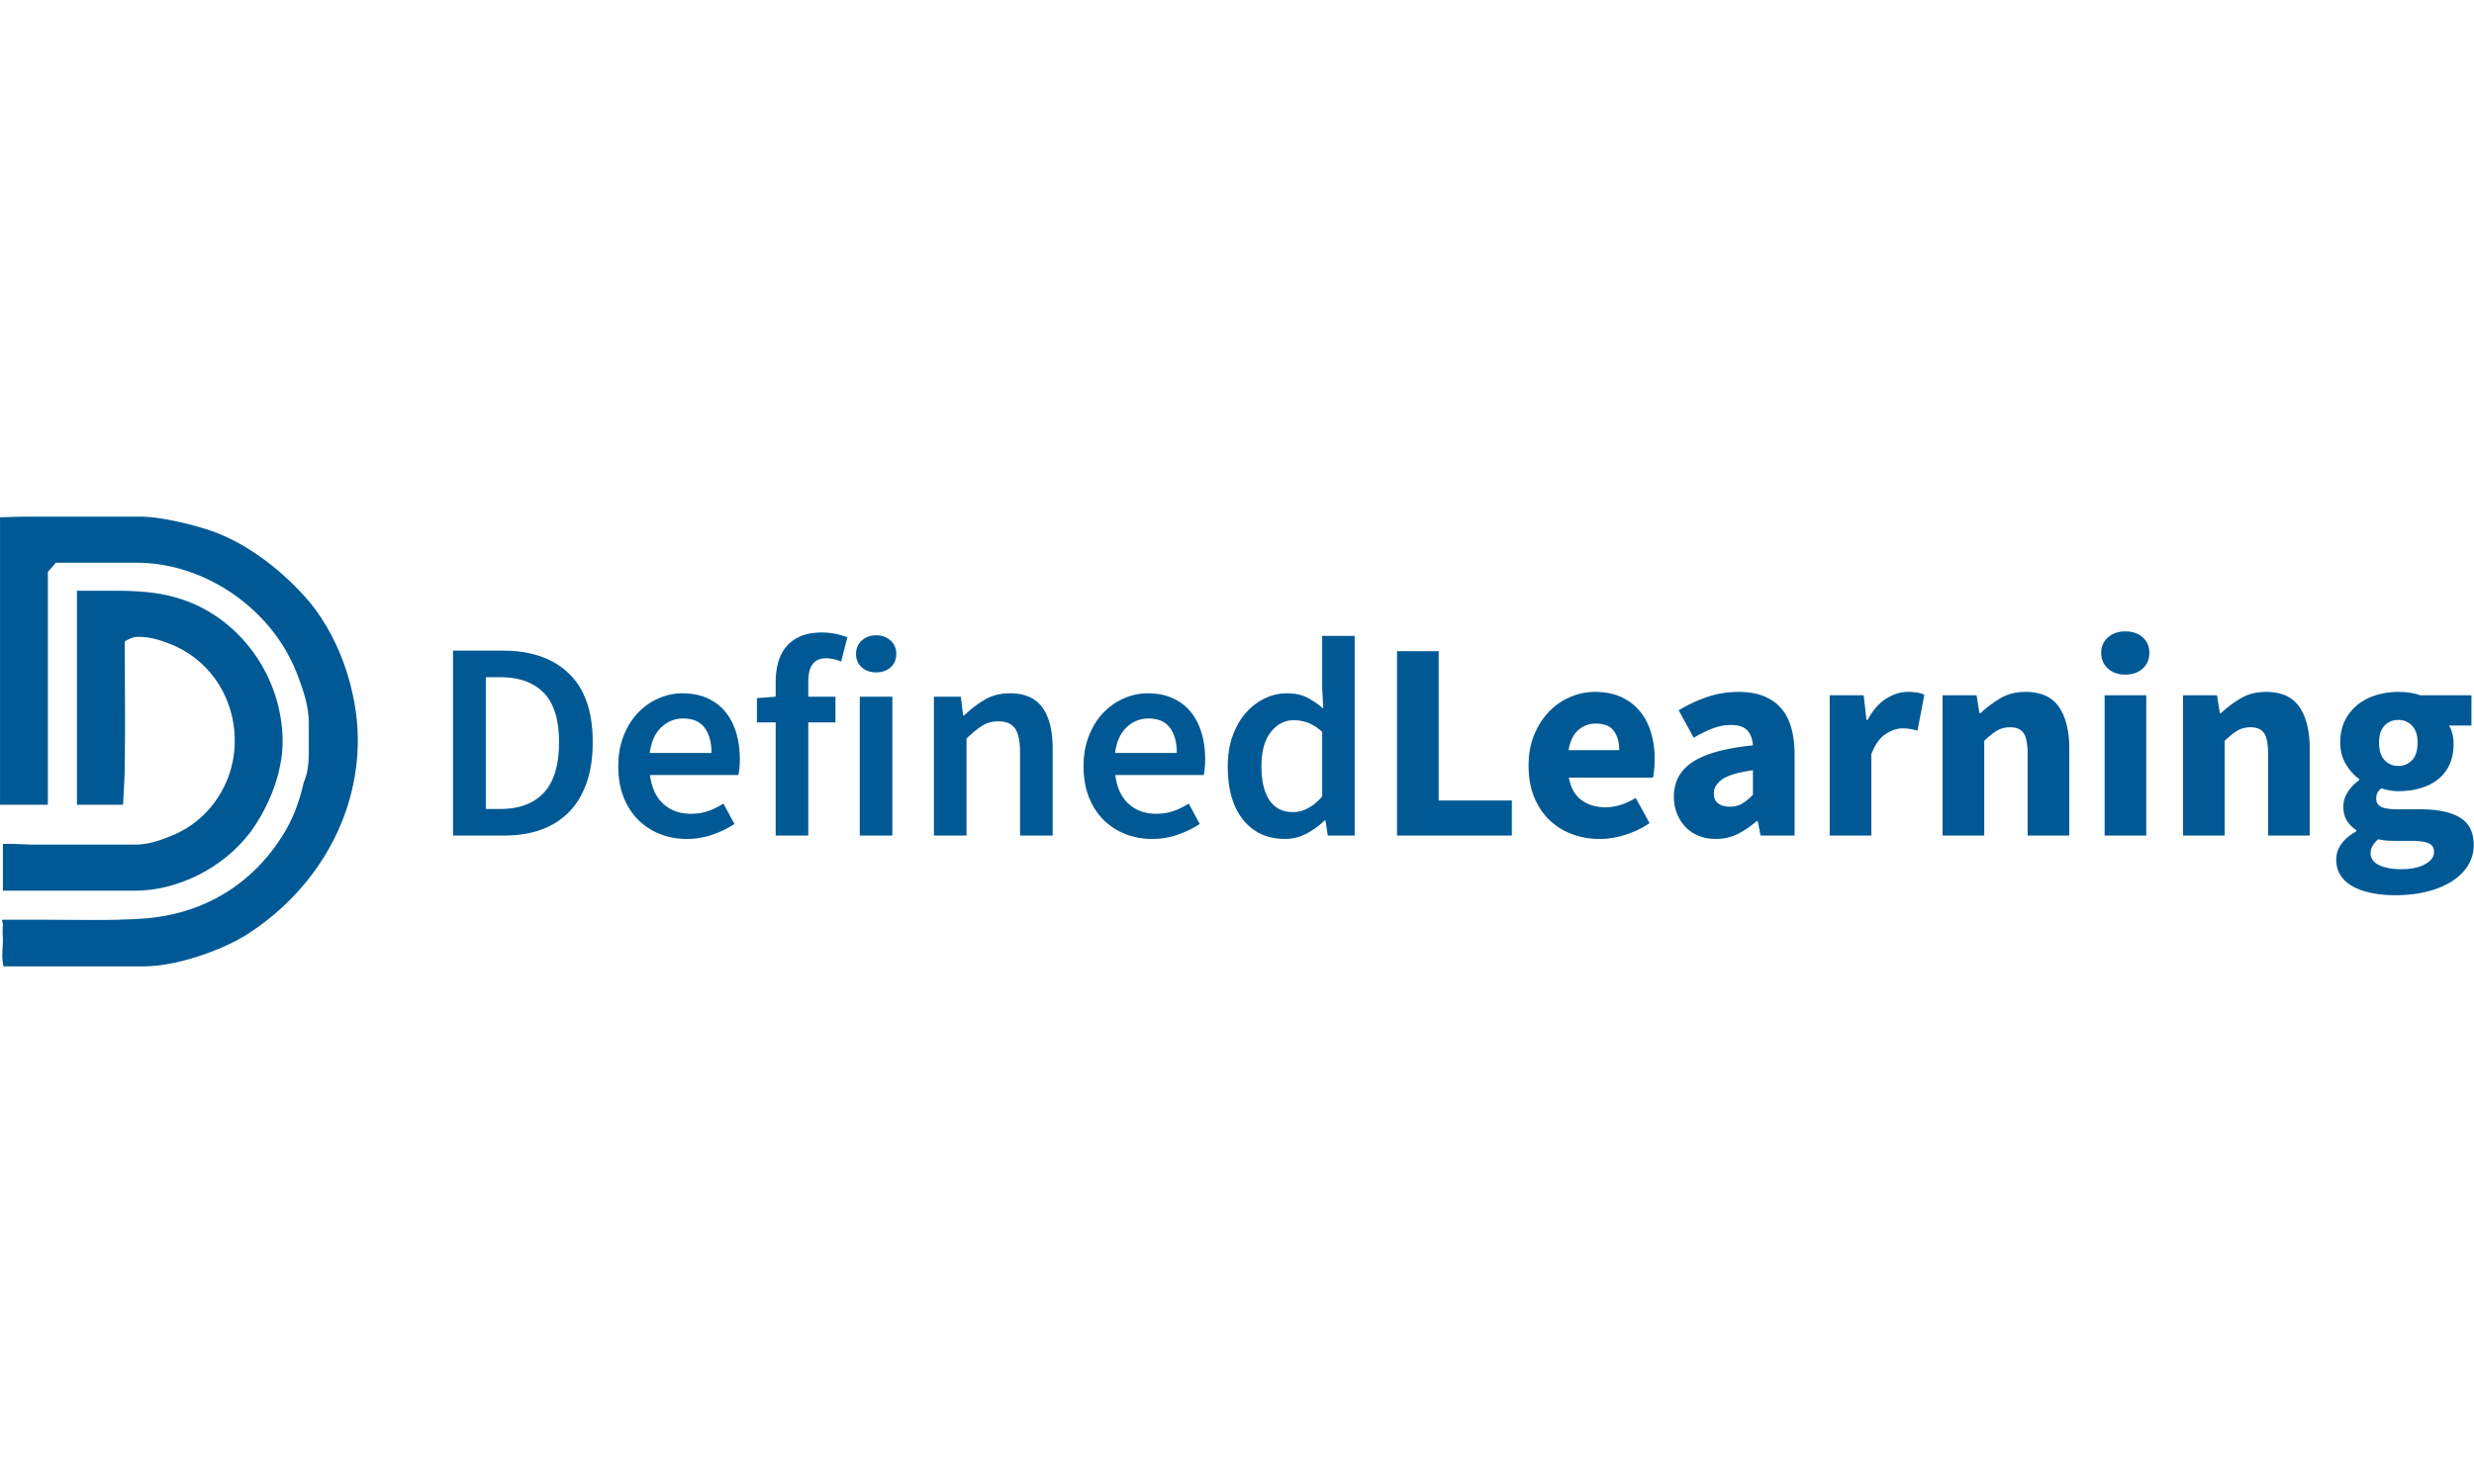 Defined Learning